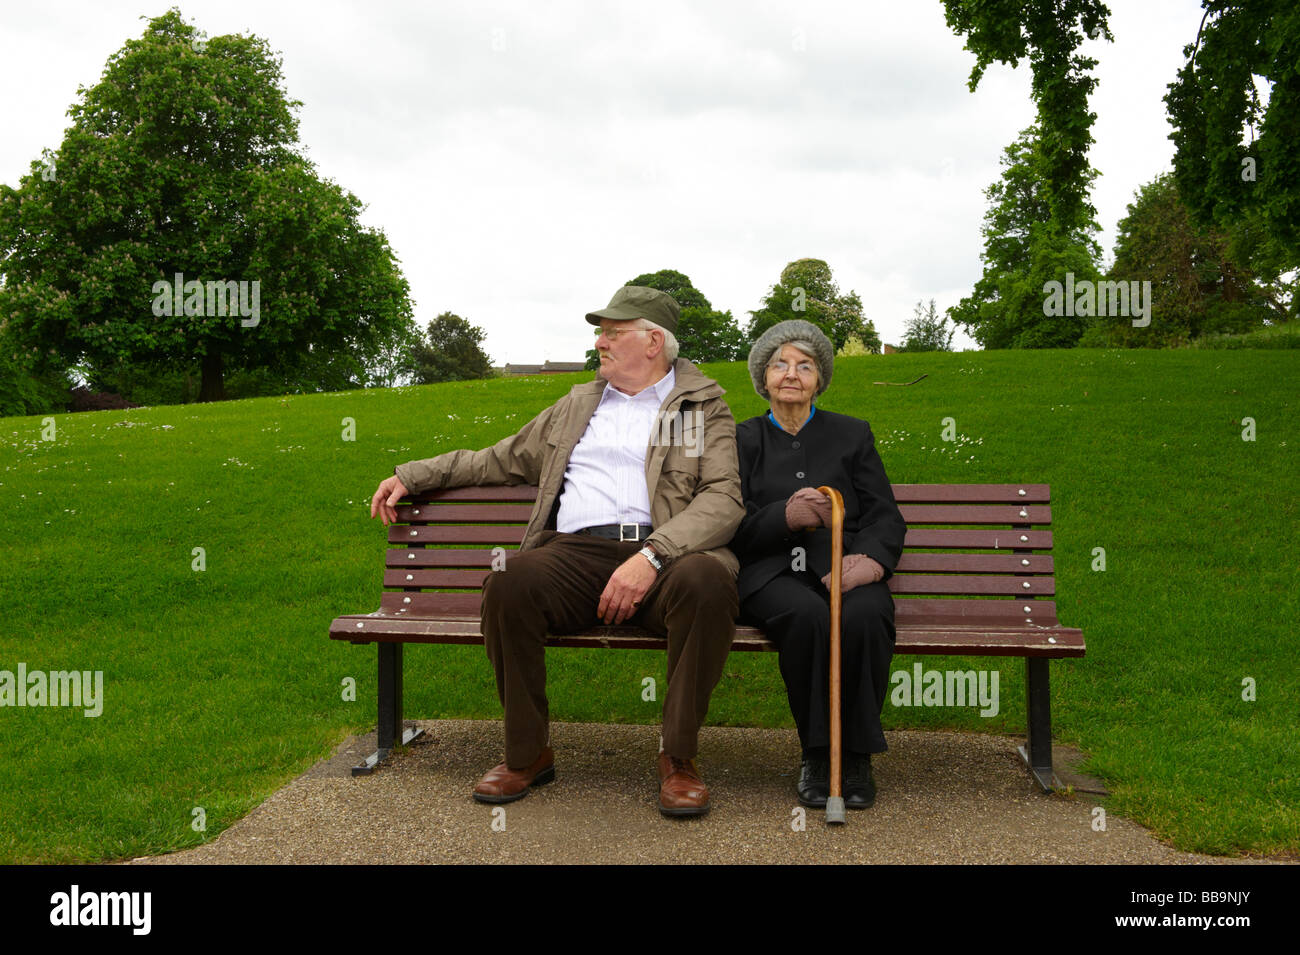 Elderly married couple sitting on park bench - Stock Image